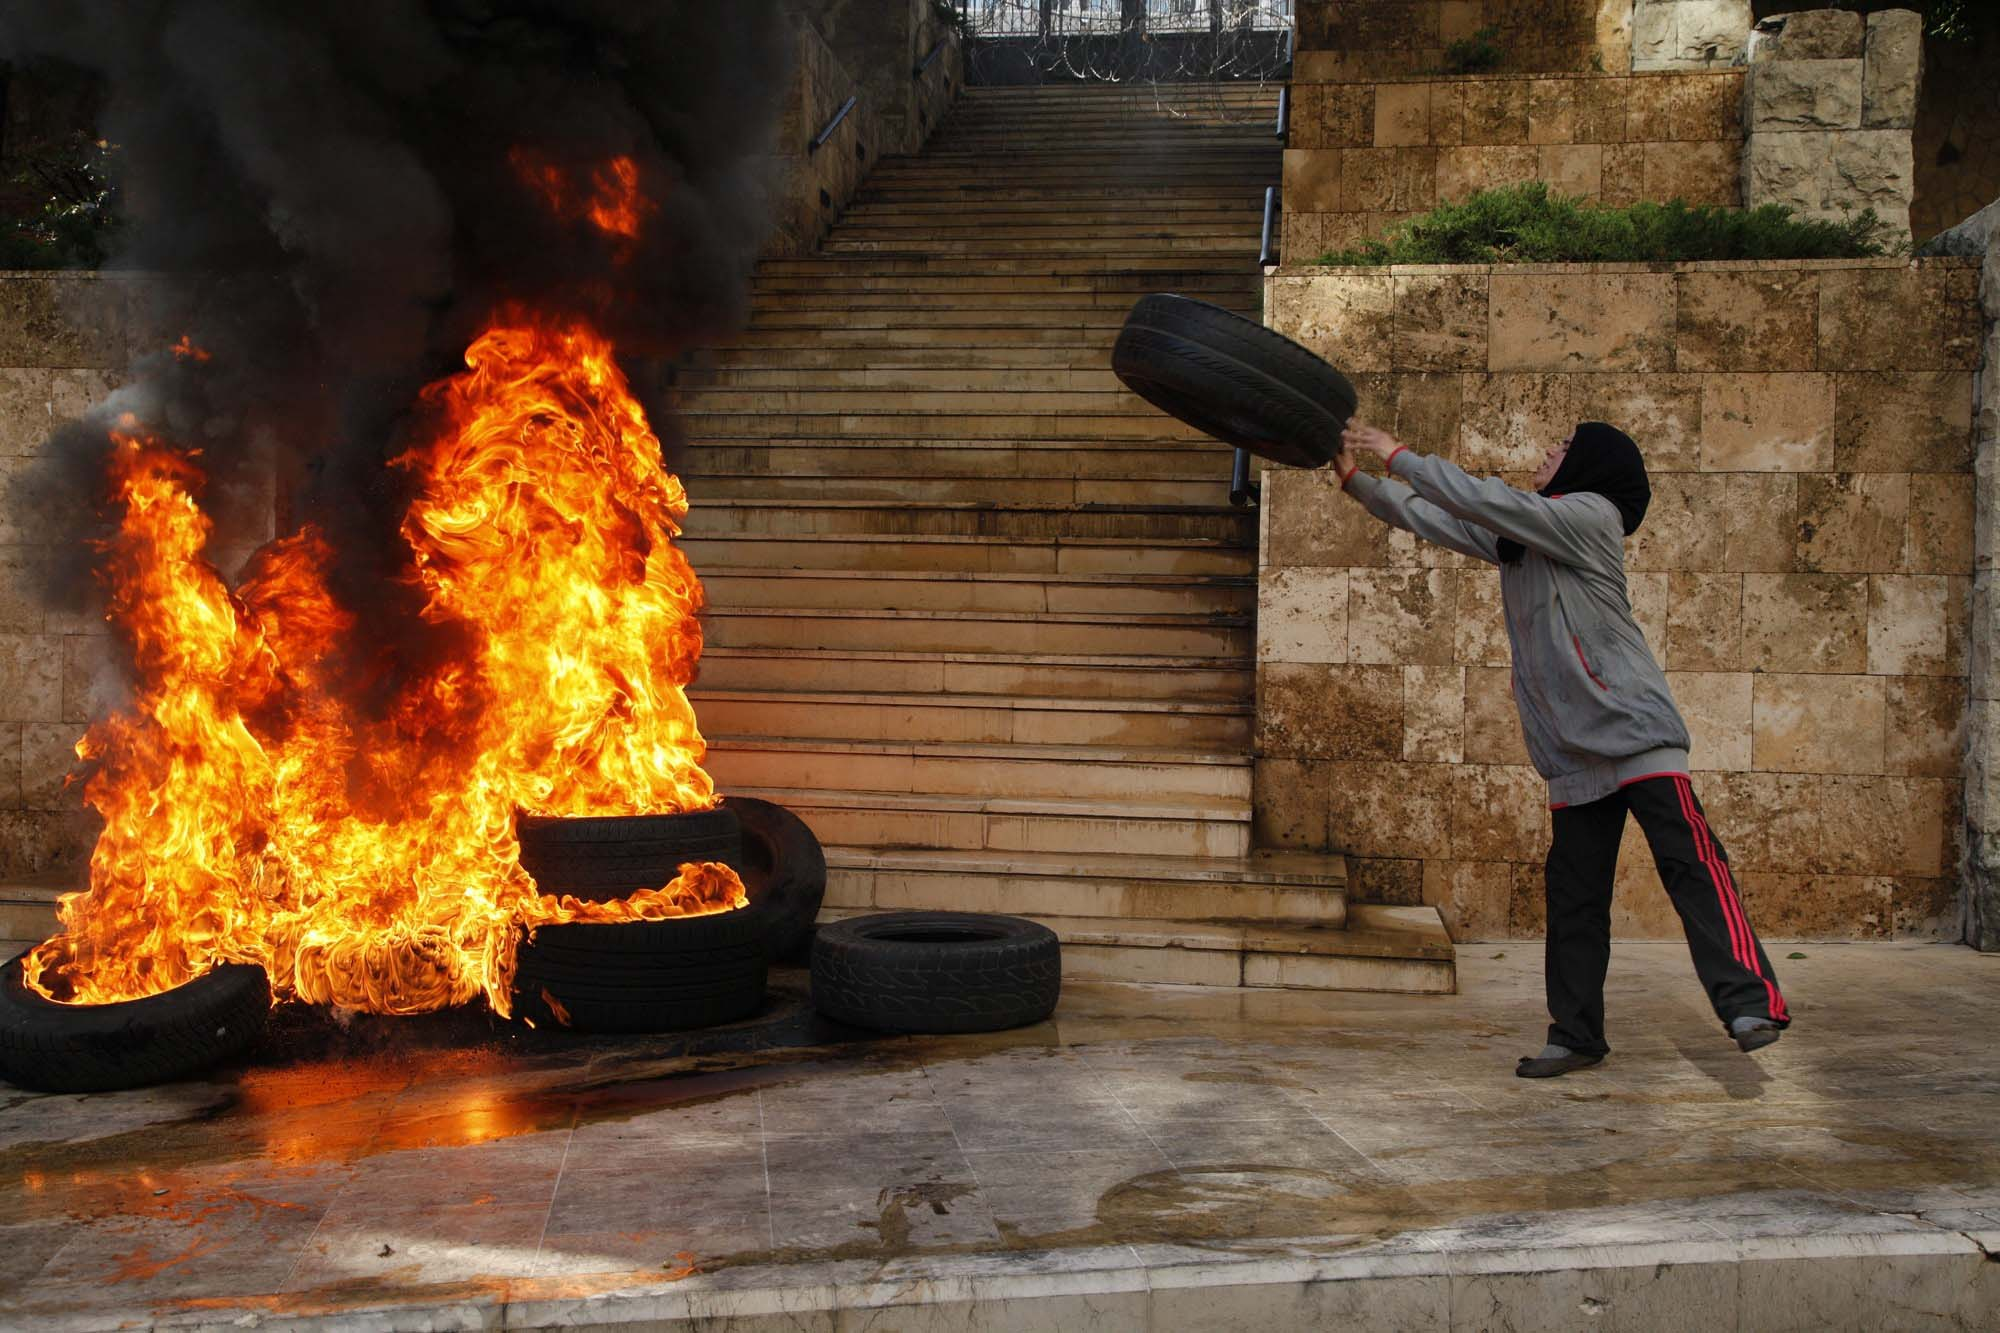 One of the relatives of the soldiers abducted by the Islamic State of Iraq and the Levant (ISIL) and Al-Nusra Front in the Arsal region of Lebanon close to Syrian border, throws tyre into fire during a protest in front of the Beirut Government Palace, Beirut, November 24, 2014. Wissam Fanash / Anadolu Agency